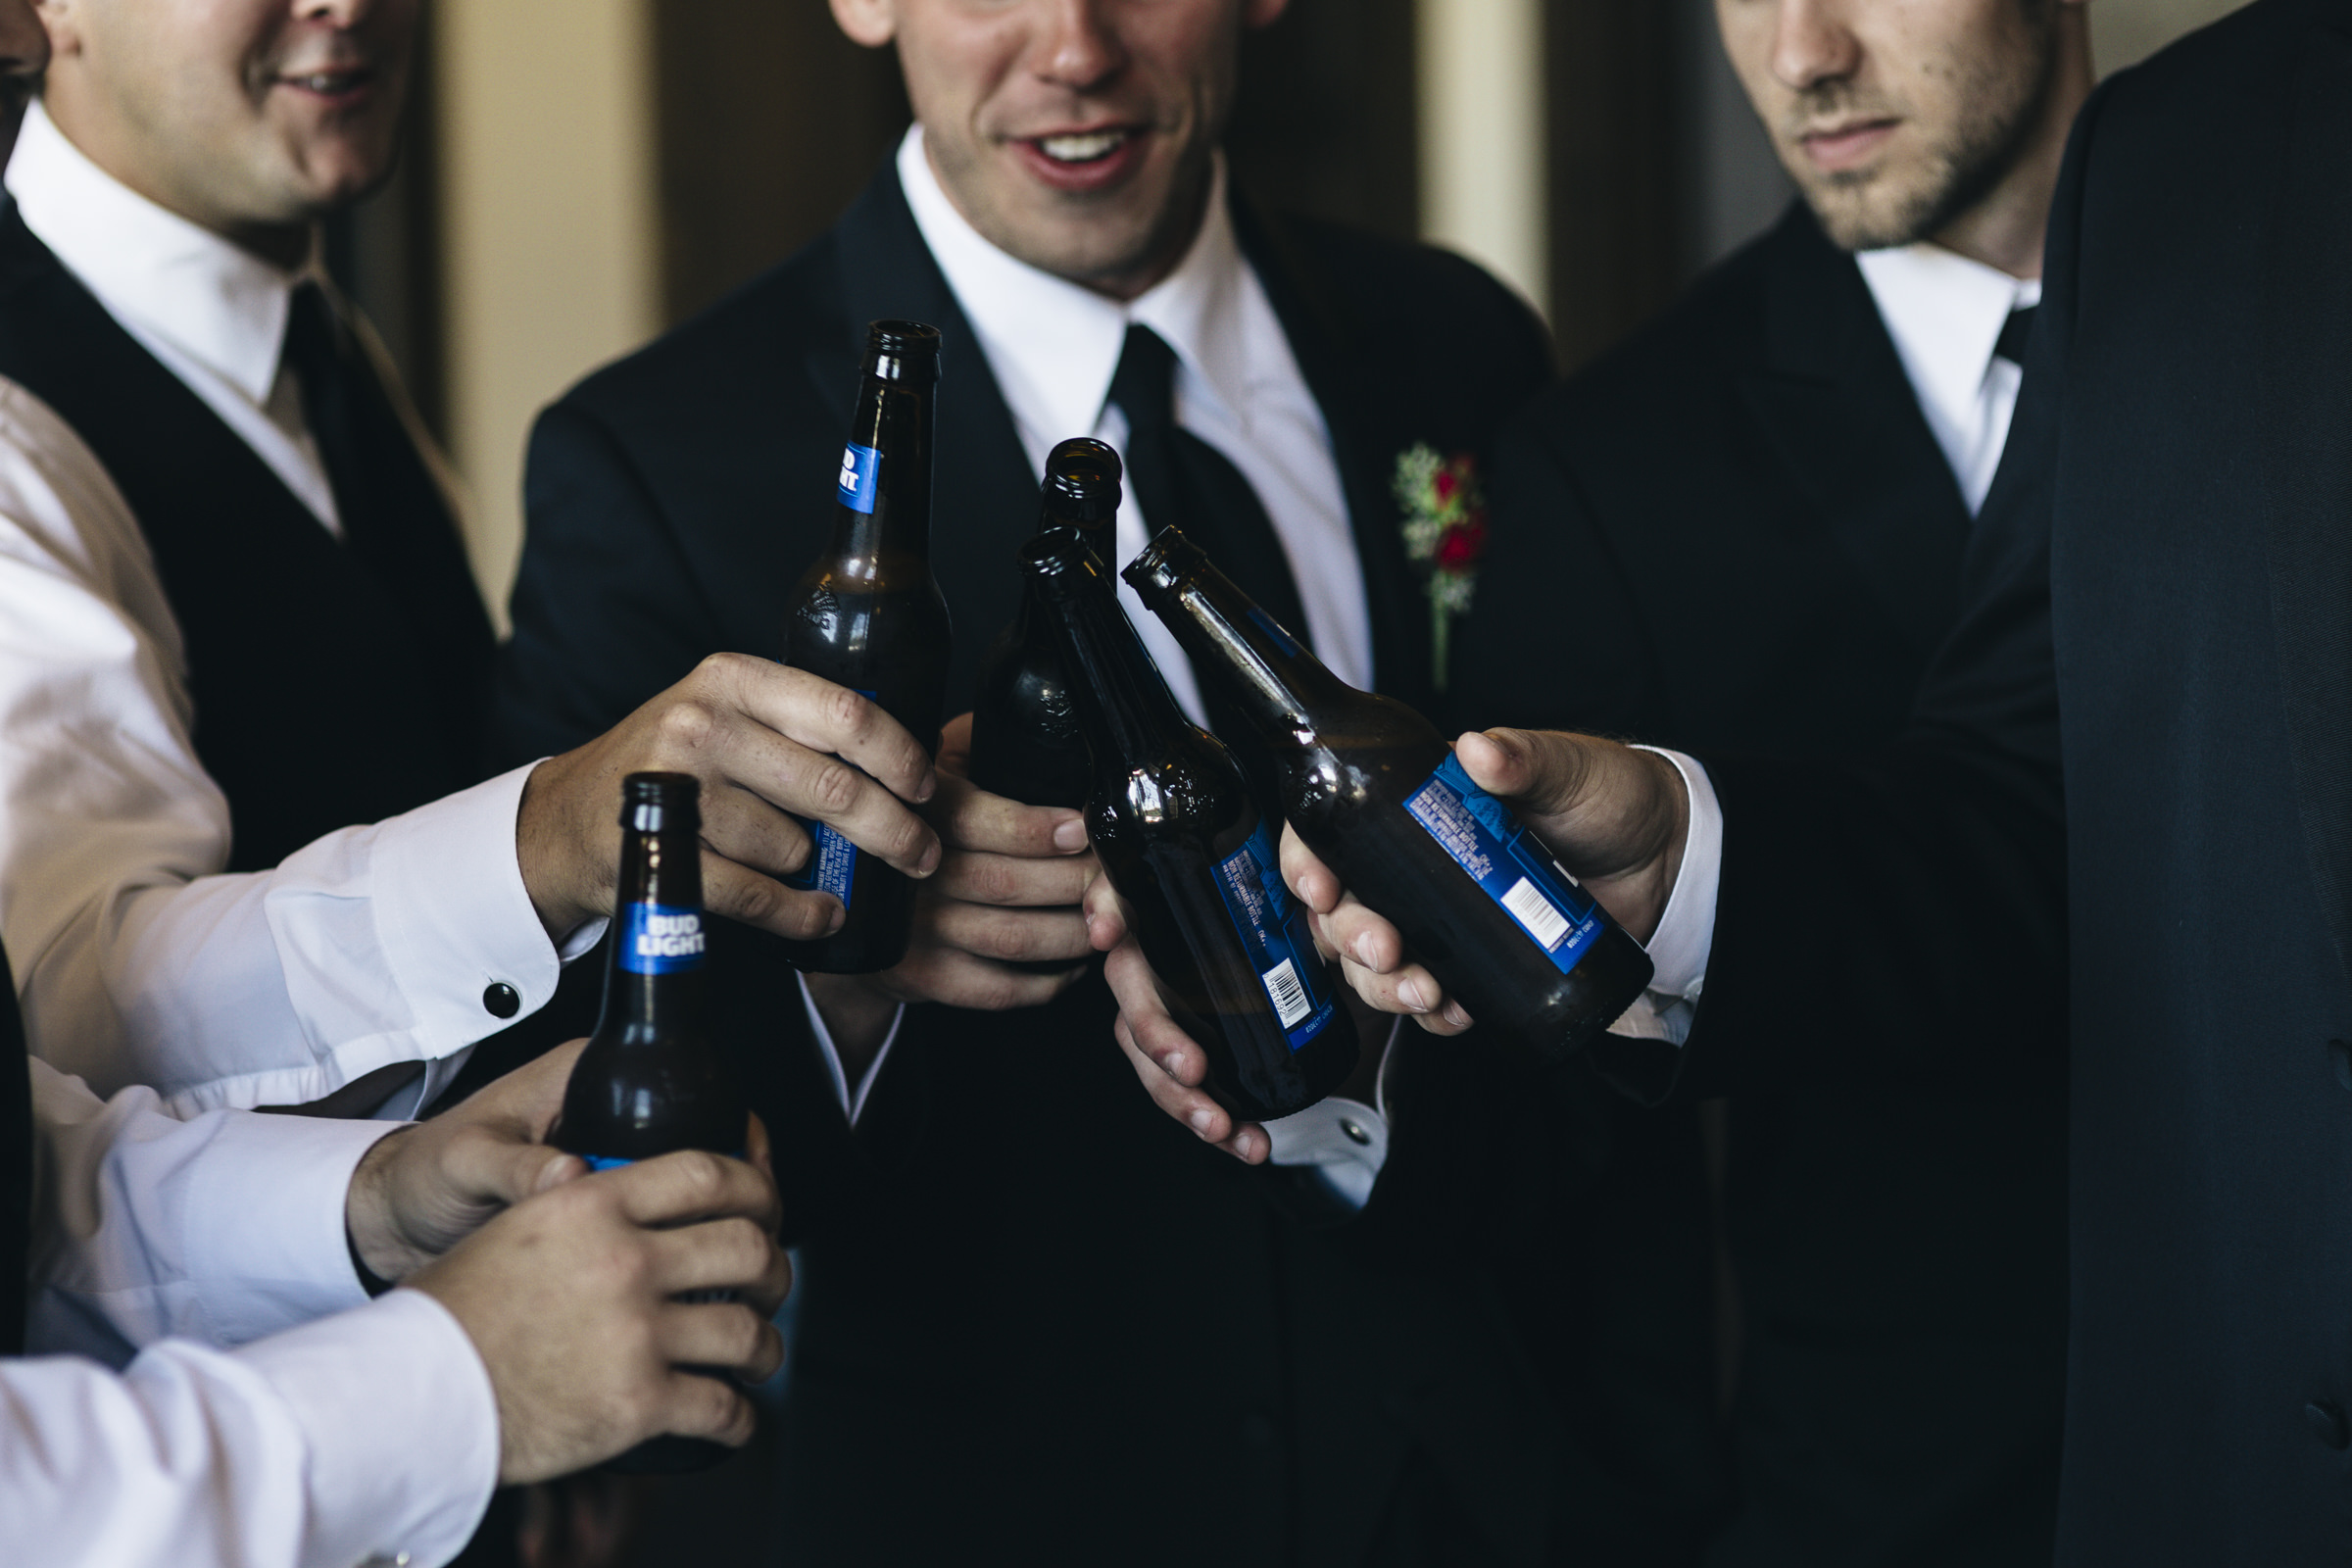 The groomsmen drink a beer before wedding ceremony at Nazareth Hall